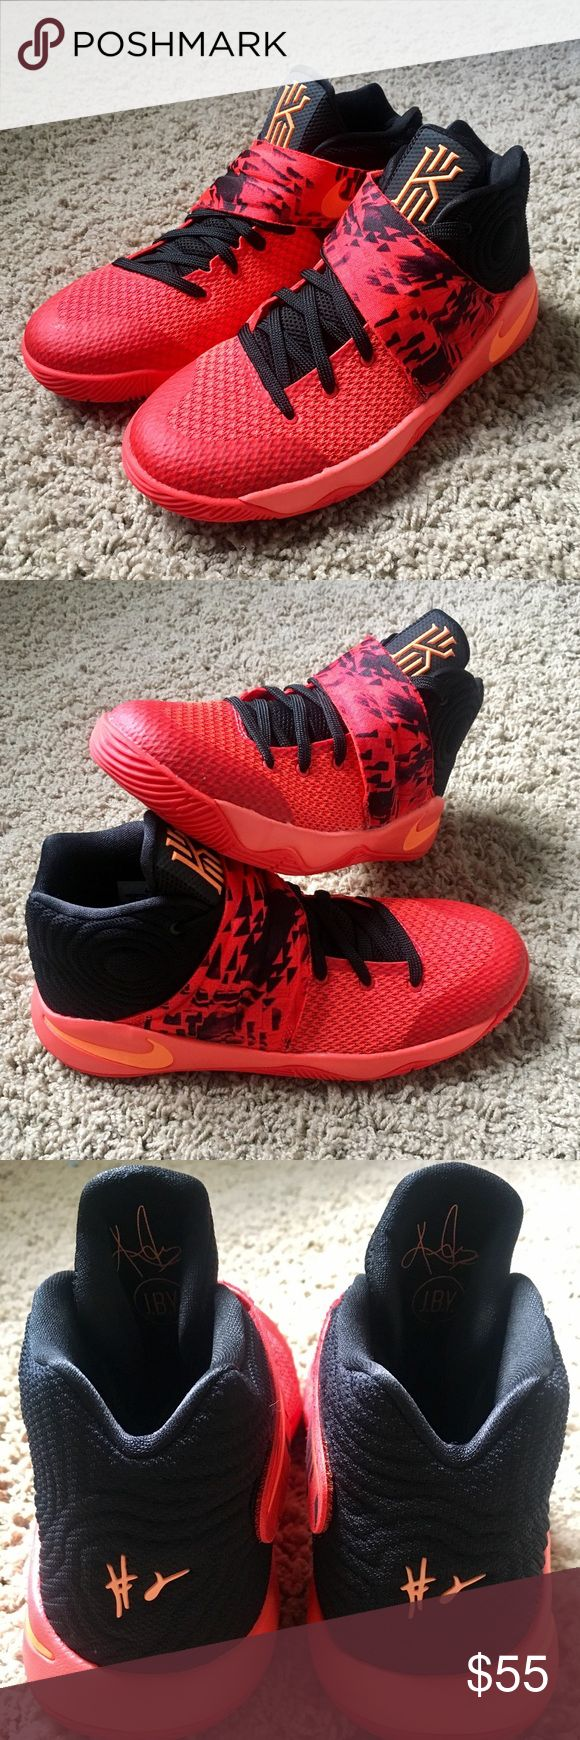 Boys 6.5Y Nike Kyrie Irving 2 Boys 6.5Y Kyrie 2 - Inferno Bright Crimson/Atomic Orange-Black - Nearly new - only less than 10 times mostly in the gym so no outdoor wear Nike Shoes Sneakers